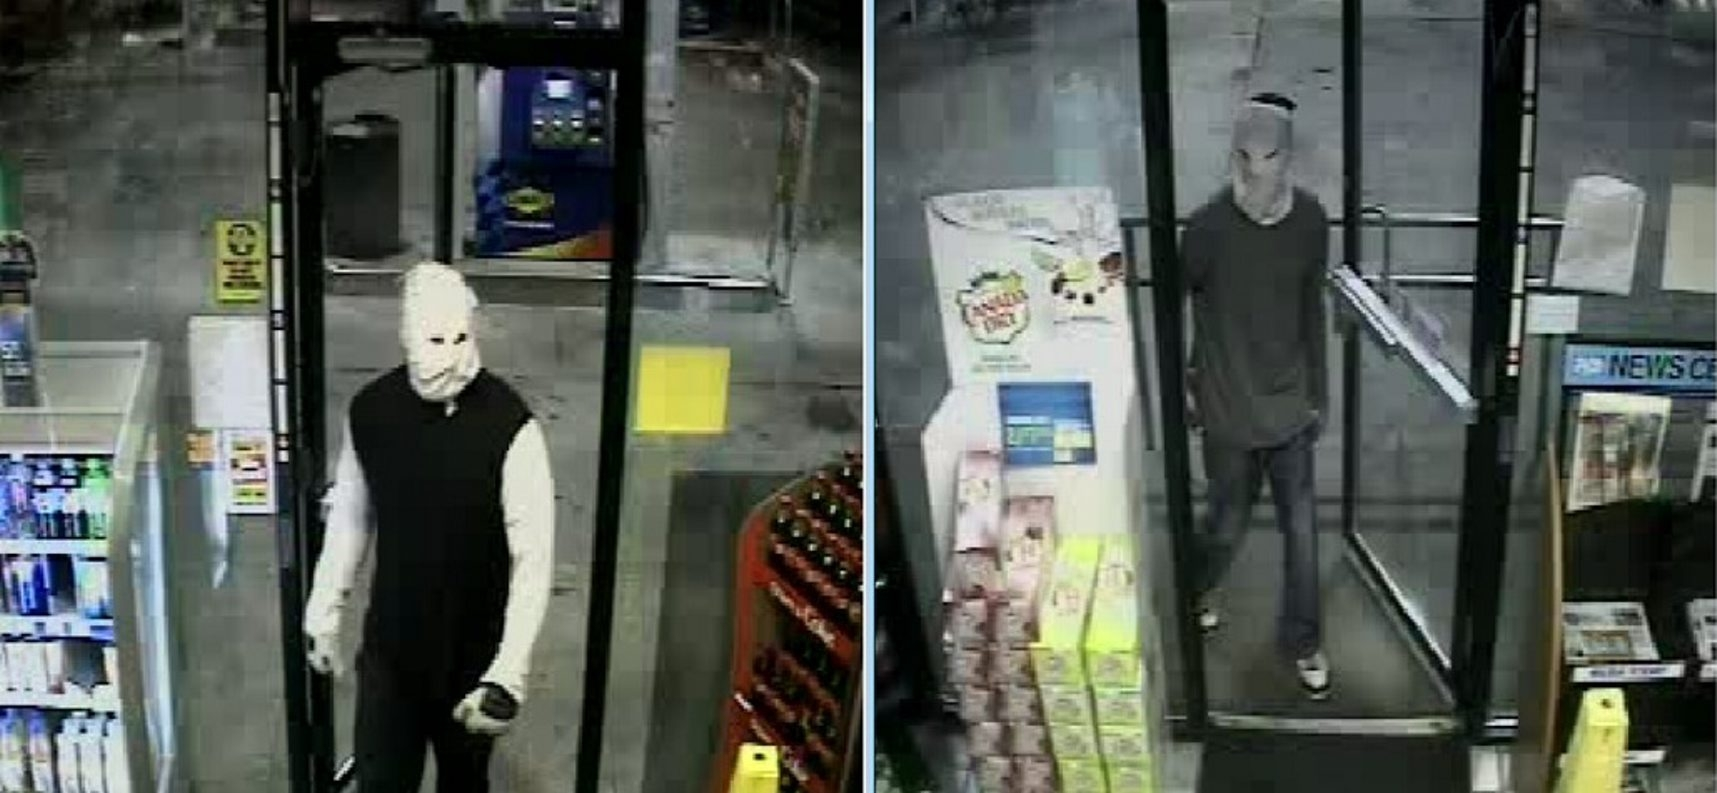 Tonawanda police provided these images of the suspects in the early morning holdup at the Sunoco station.